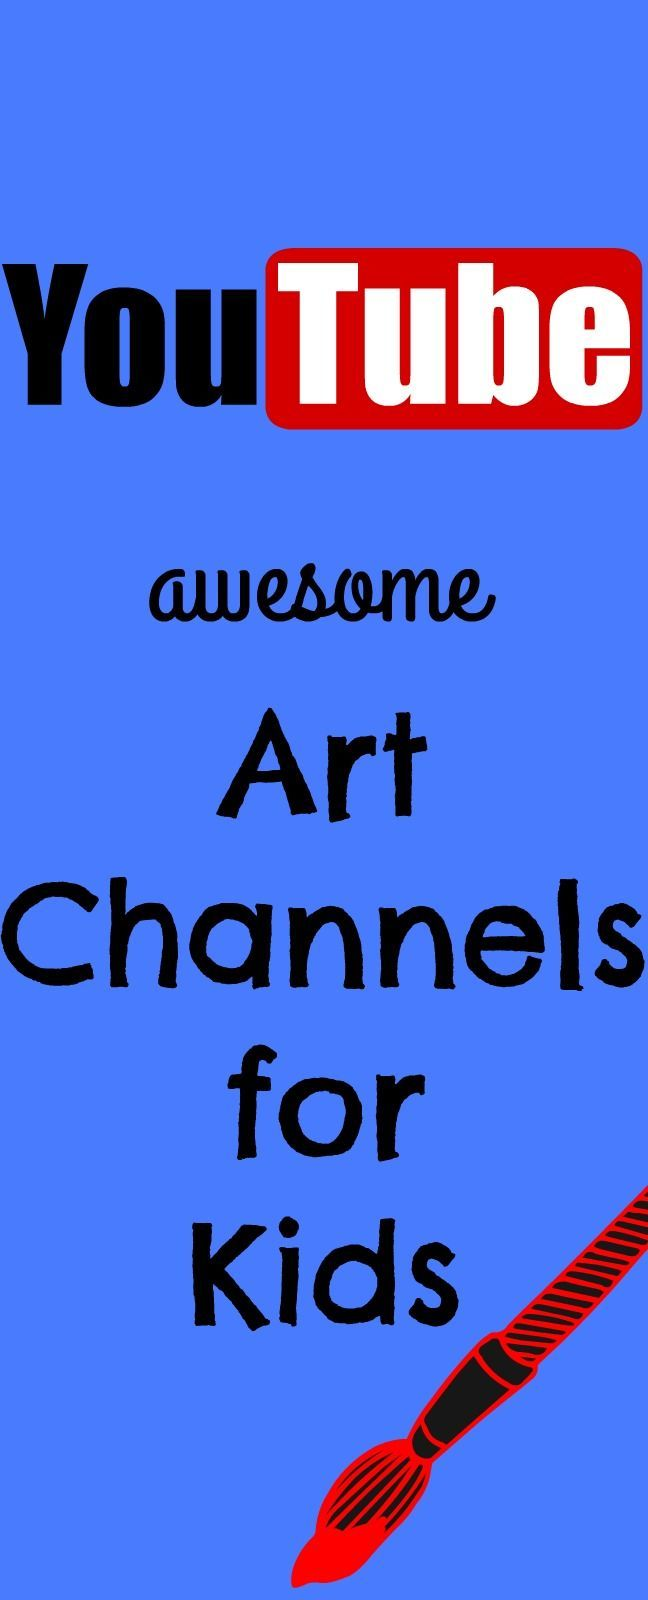 must see art history lessons pins art history visual arts art lessons for kids art channels for kids tutorials for painting